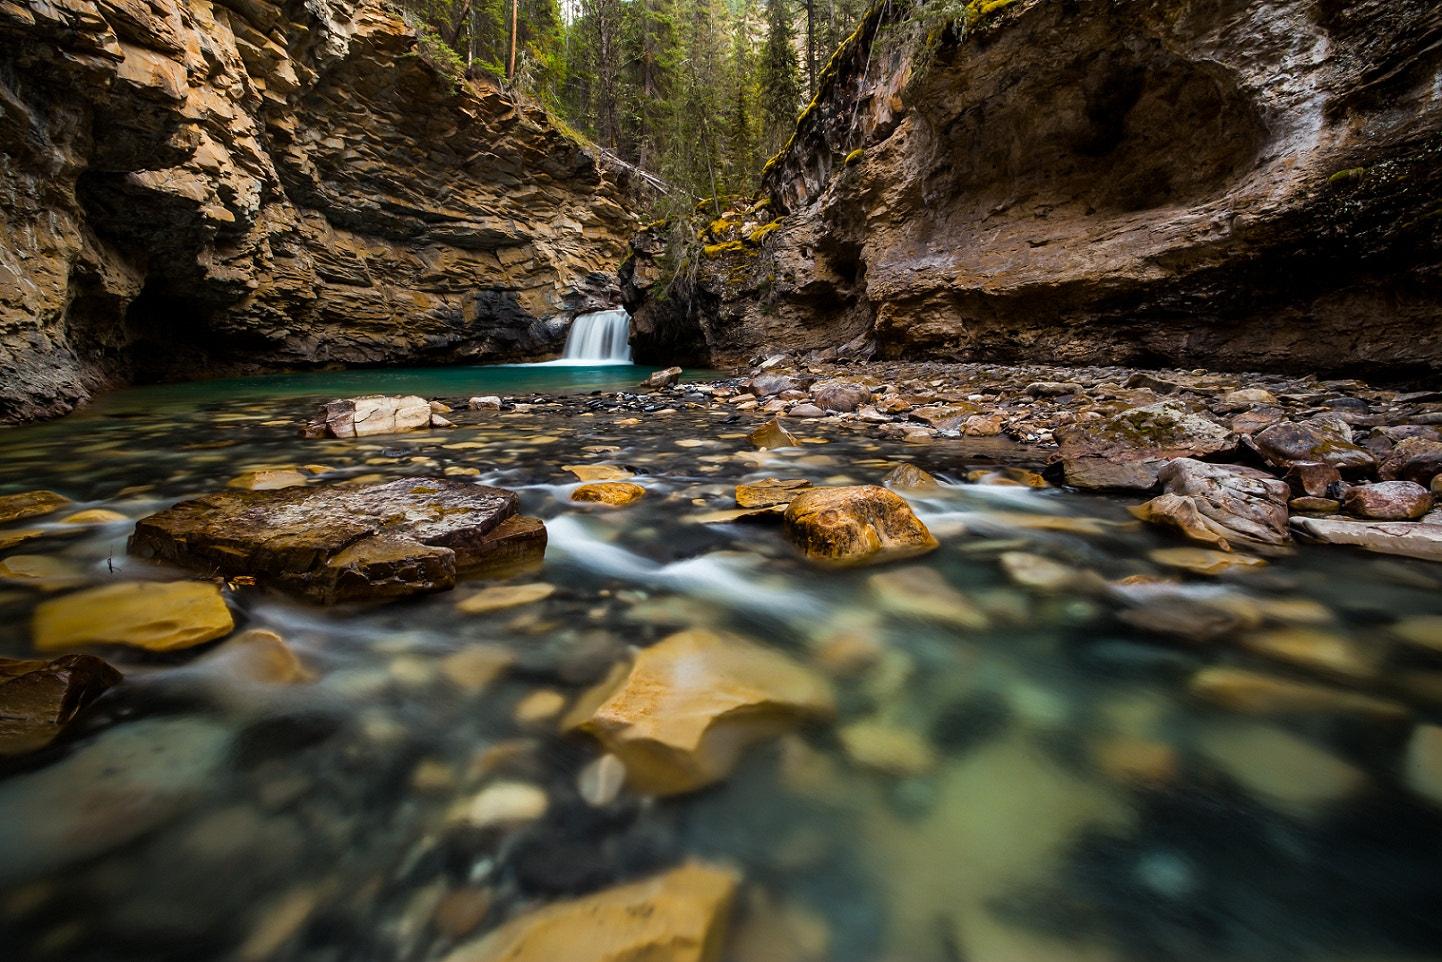 Photograph Johnston Canyon by James McGregor on 500px